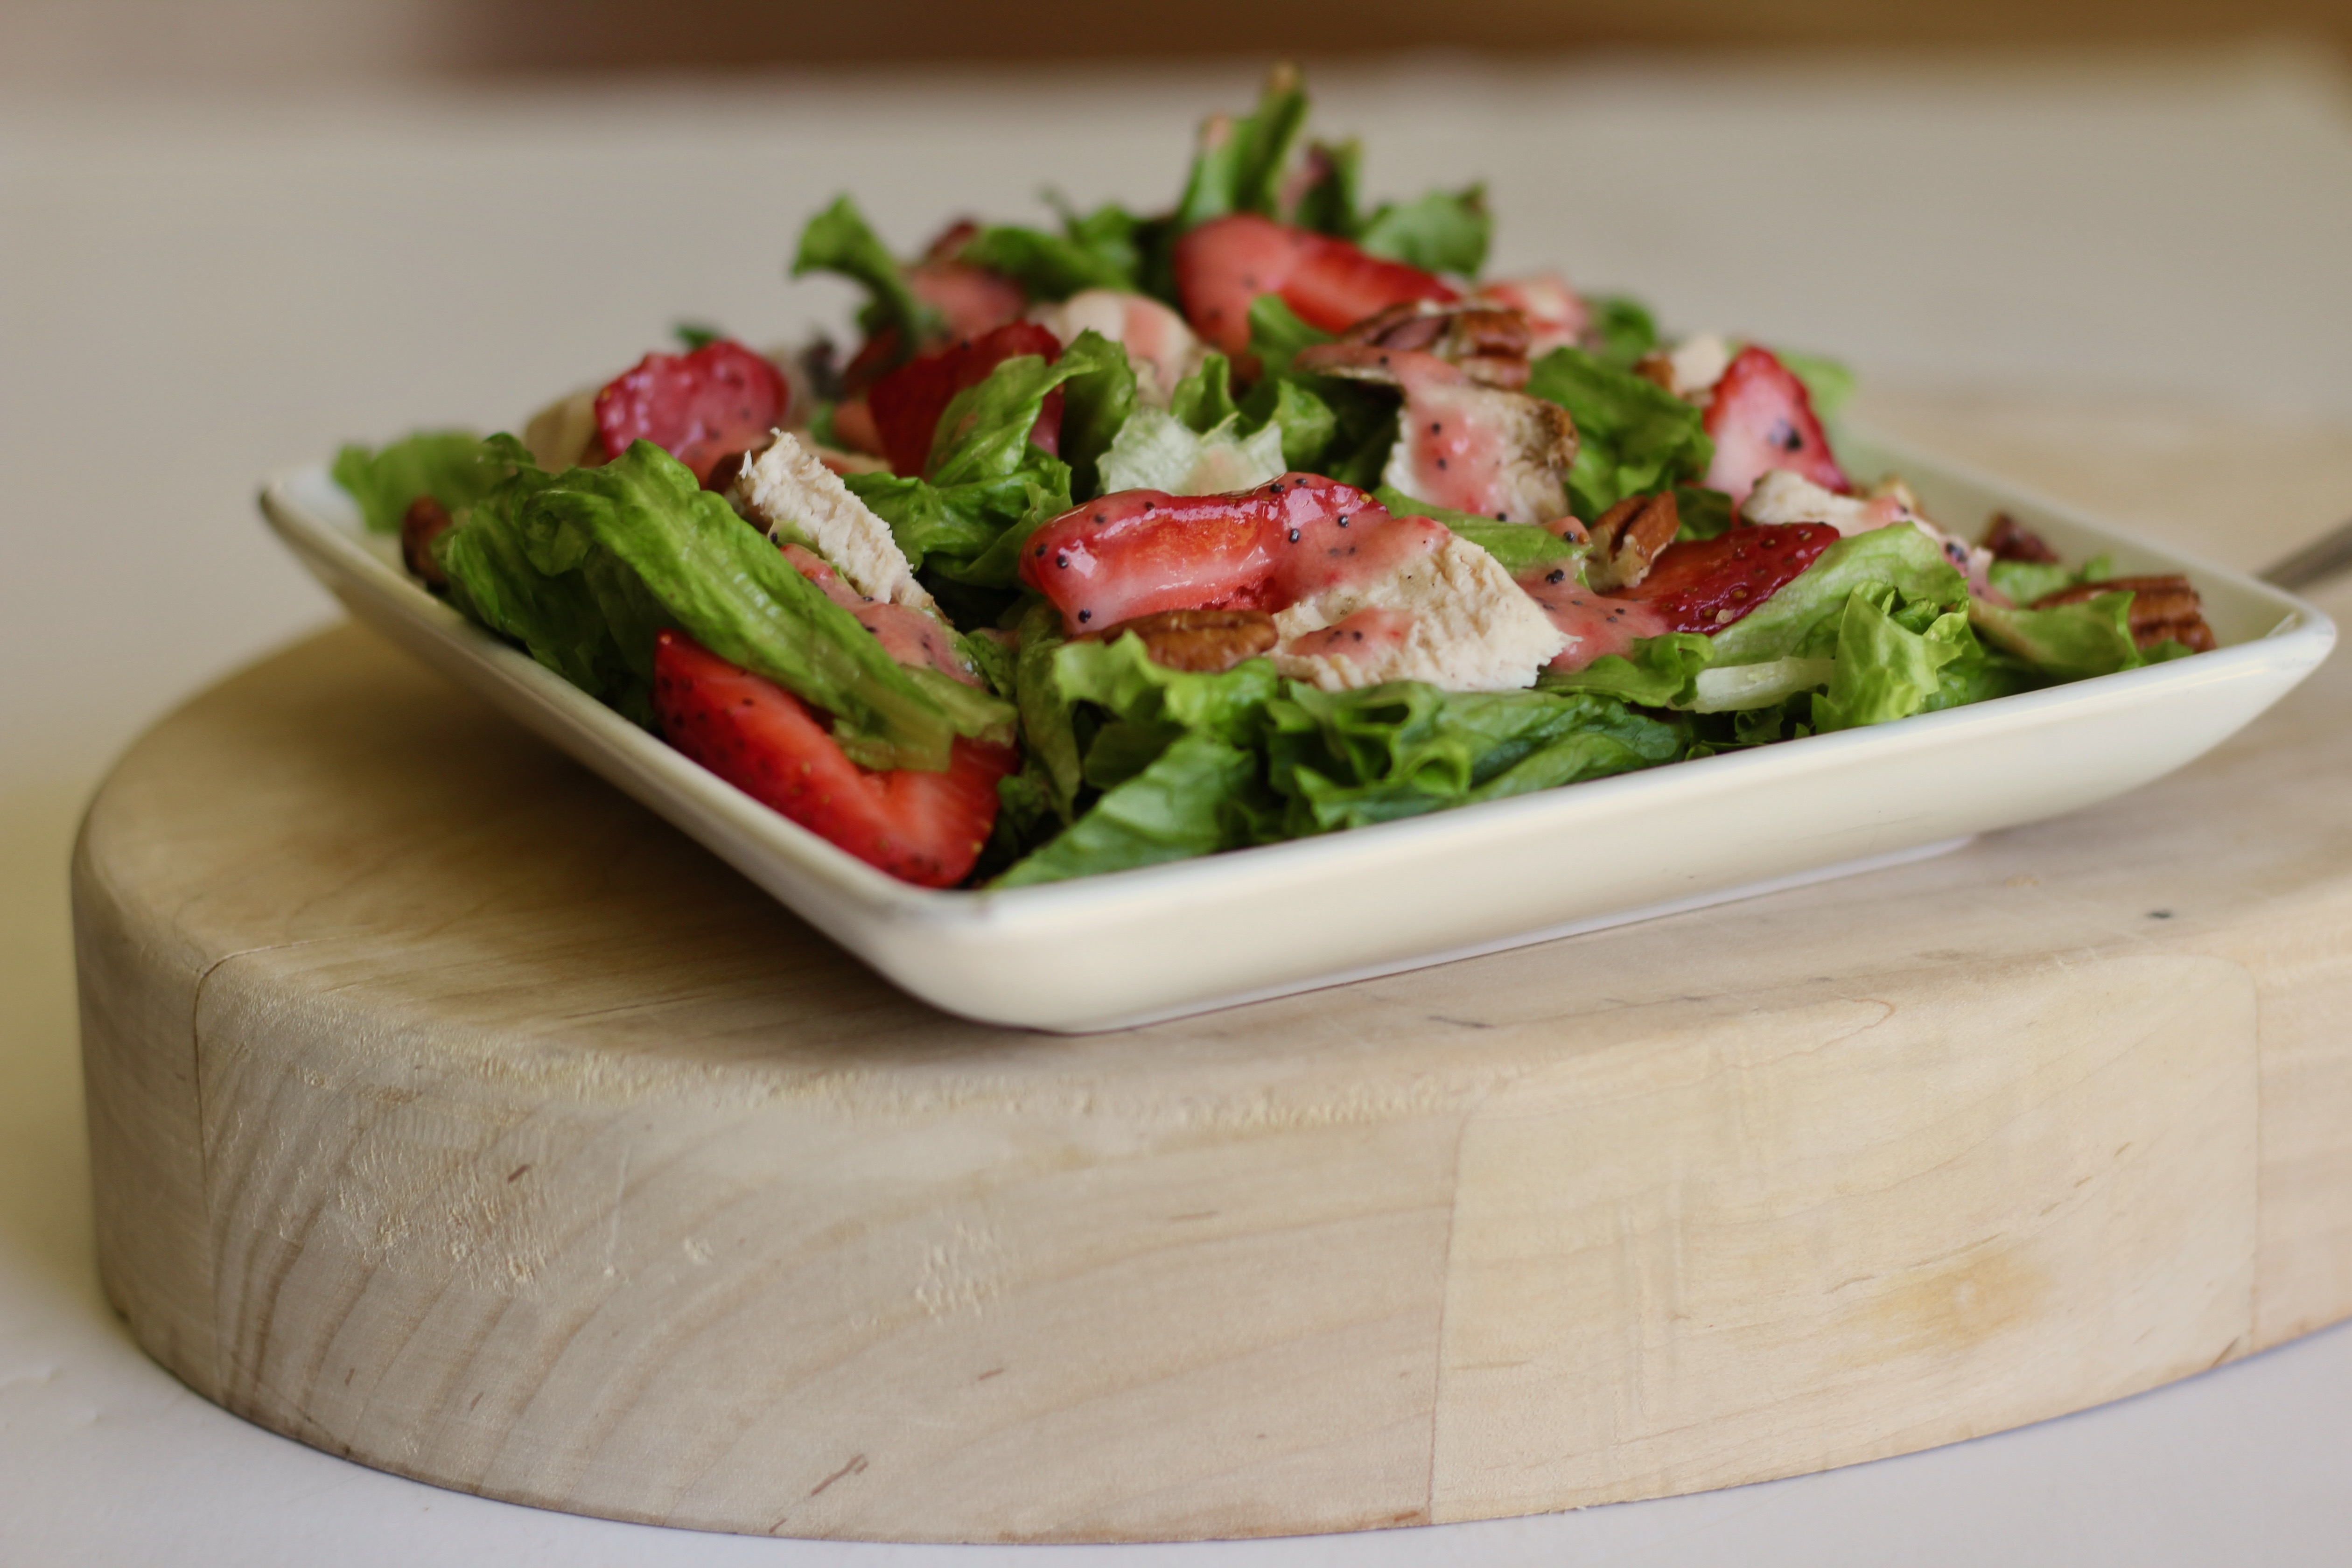 Grilled Chicken Salad with Strawberry Poppy Seed Dressing